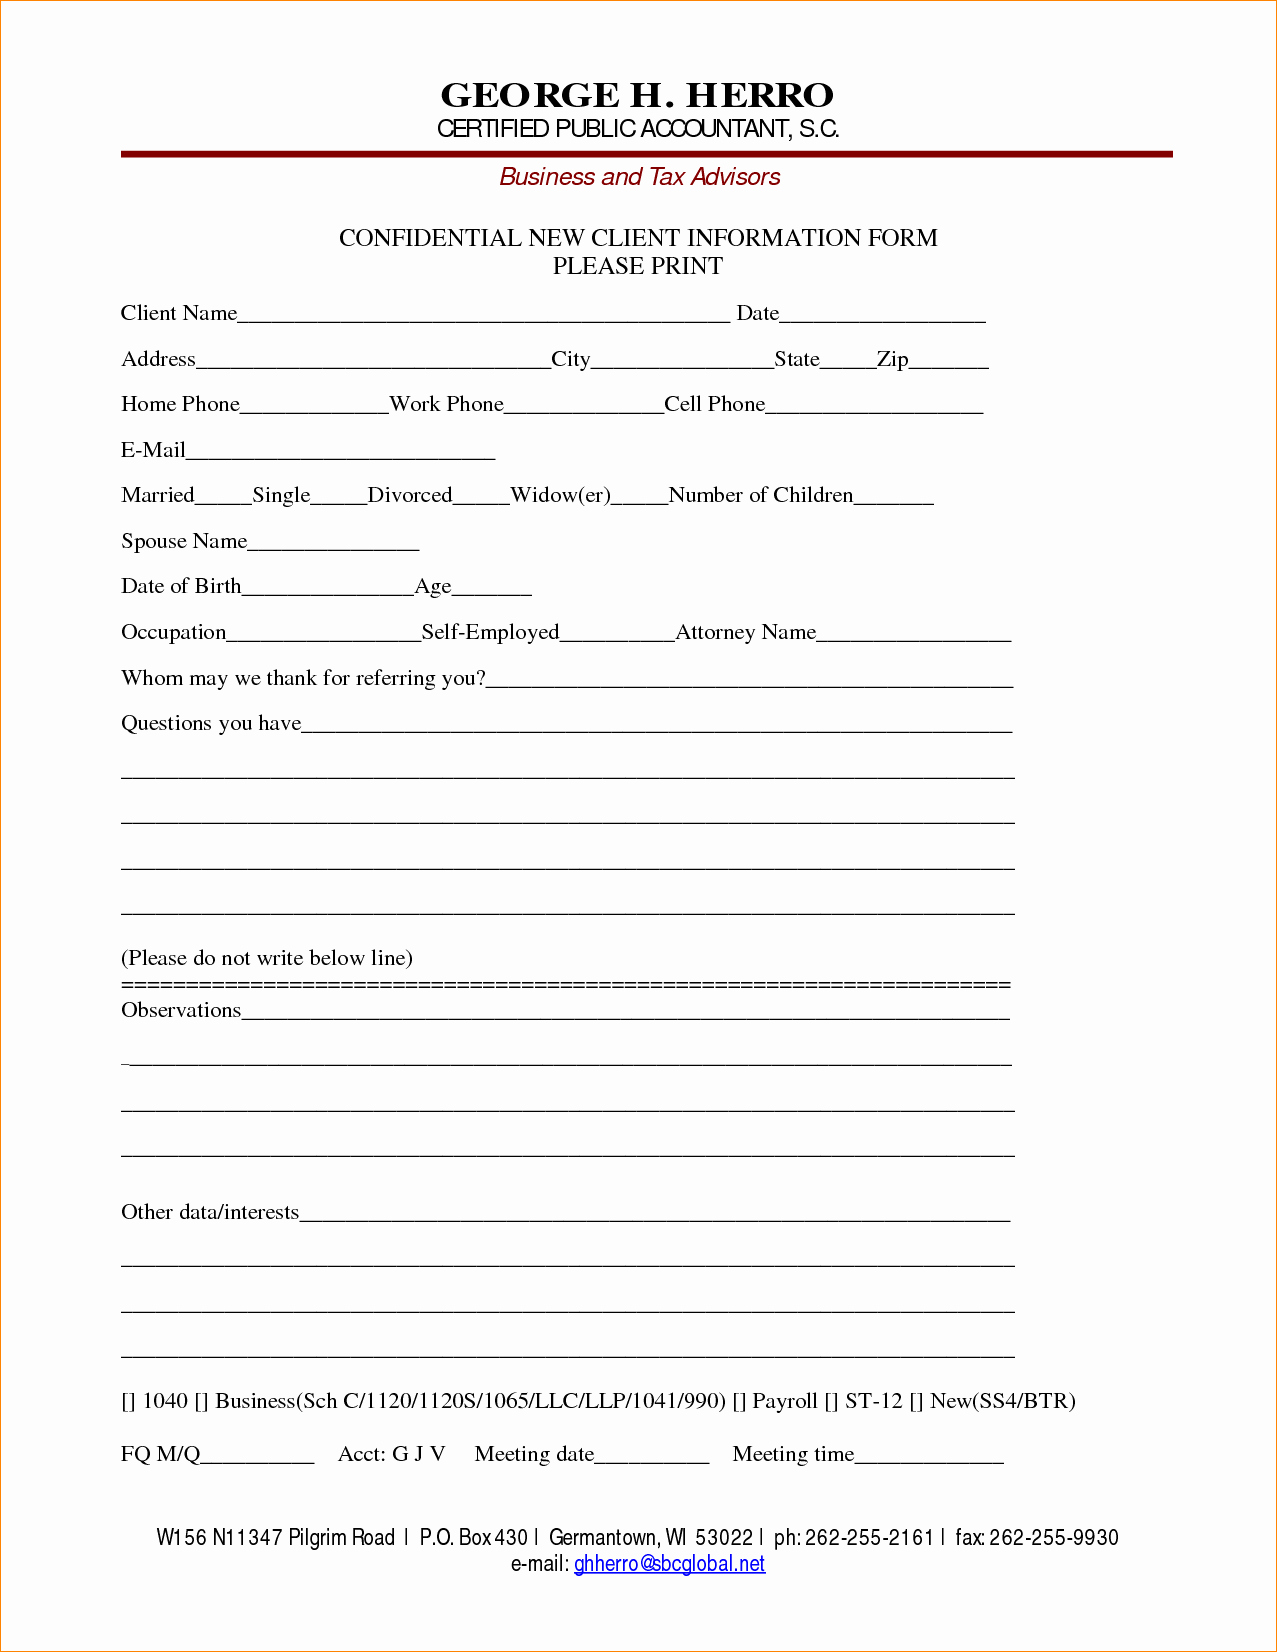 Contact Information form Template Word Inspirational New Customer form Template Word Portablegasgrillweber